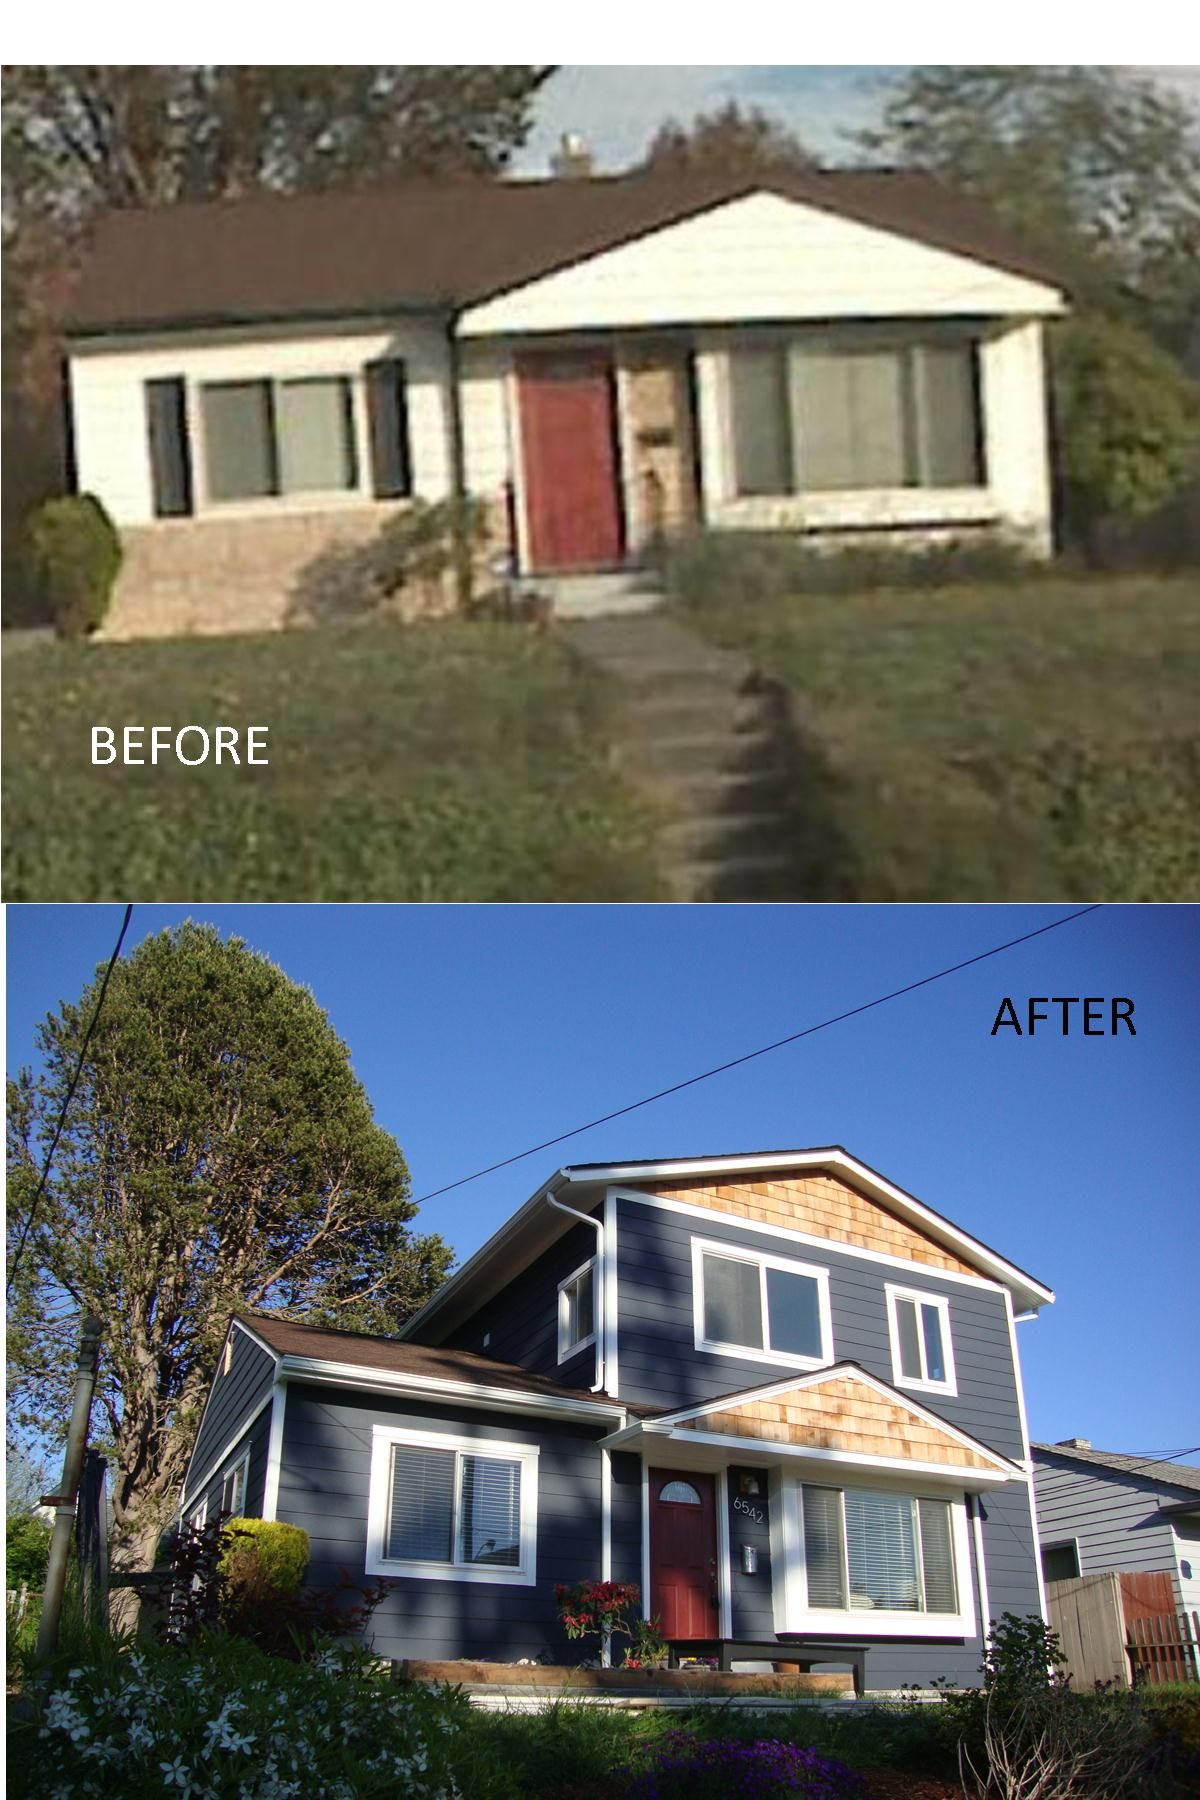 Ranch House Additions Before And After : ranch, house, additions, before, after, Flying, Dormer, Remodel, Before, After, (Remodels), Exterior, Remodel,, House, Exterior,, Second, Floor, Addition